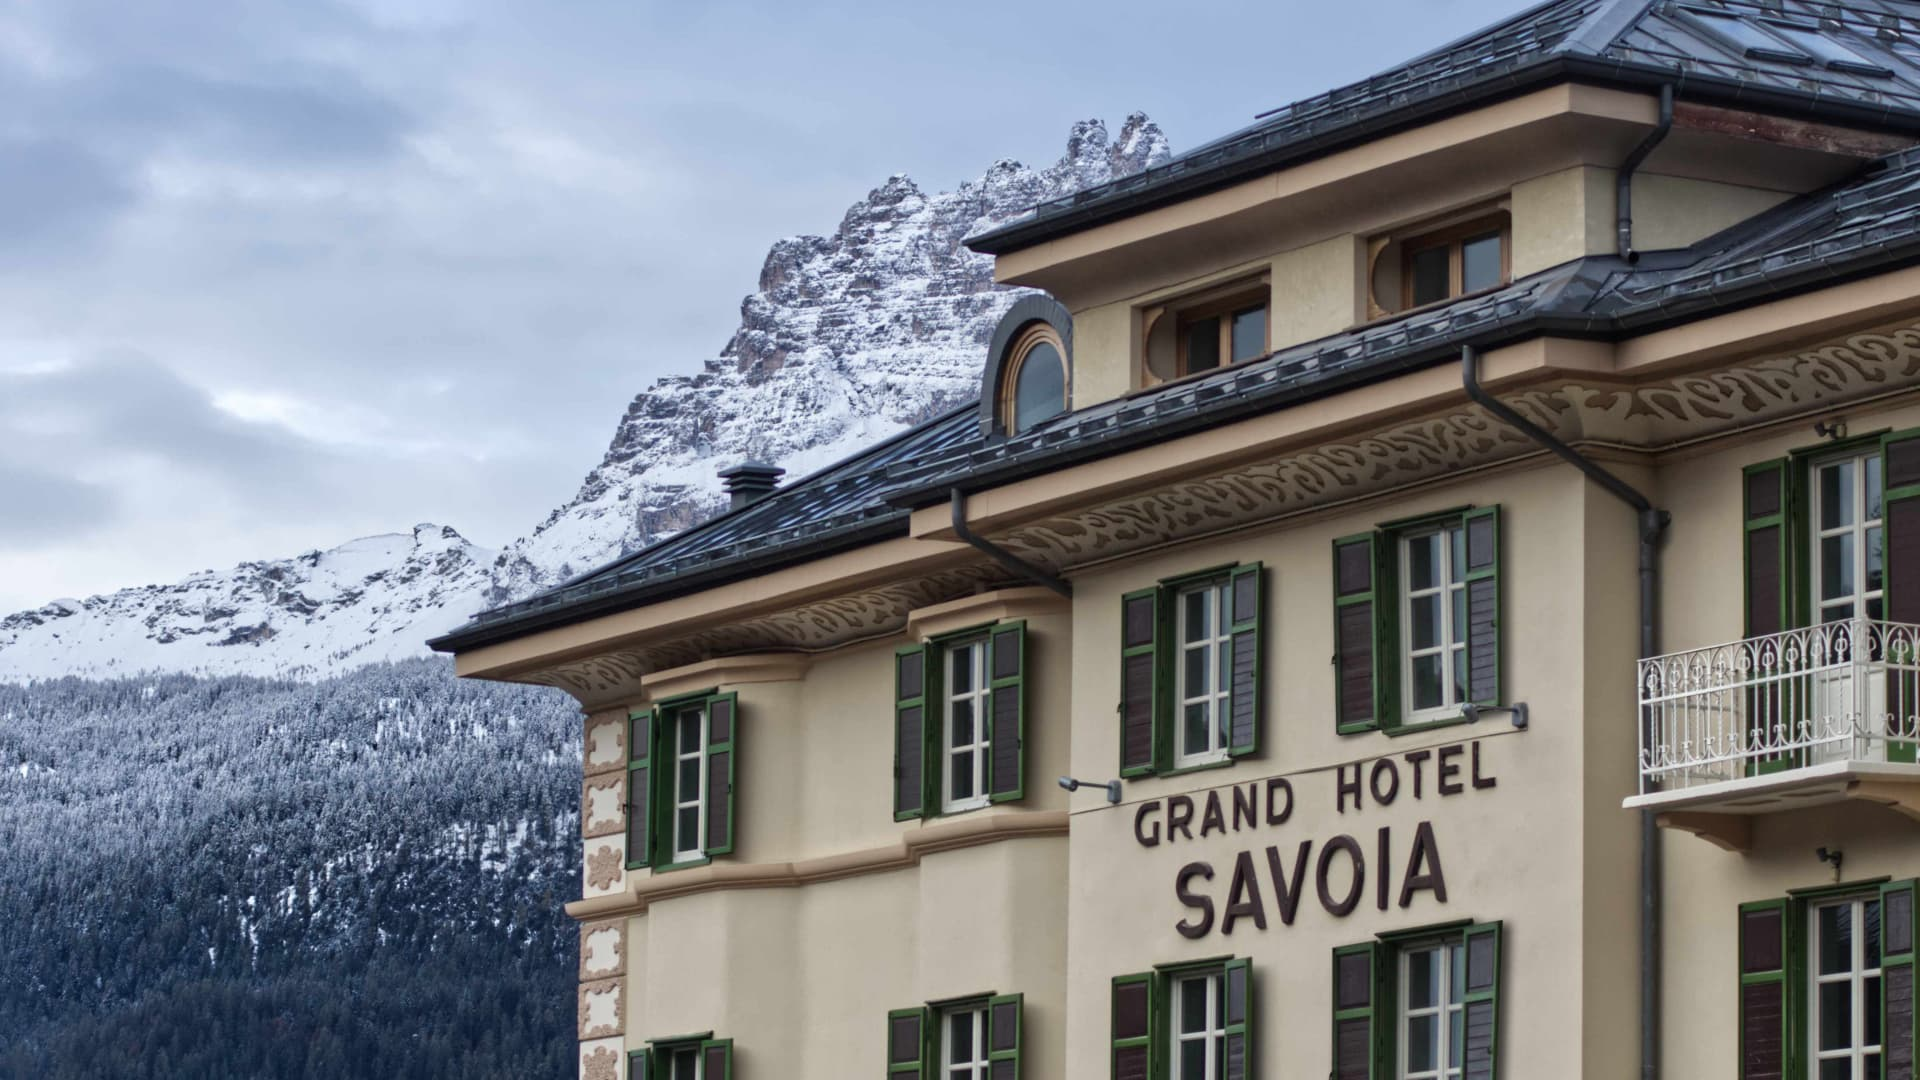 Grand Hotel Savoia - building